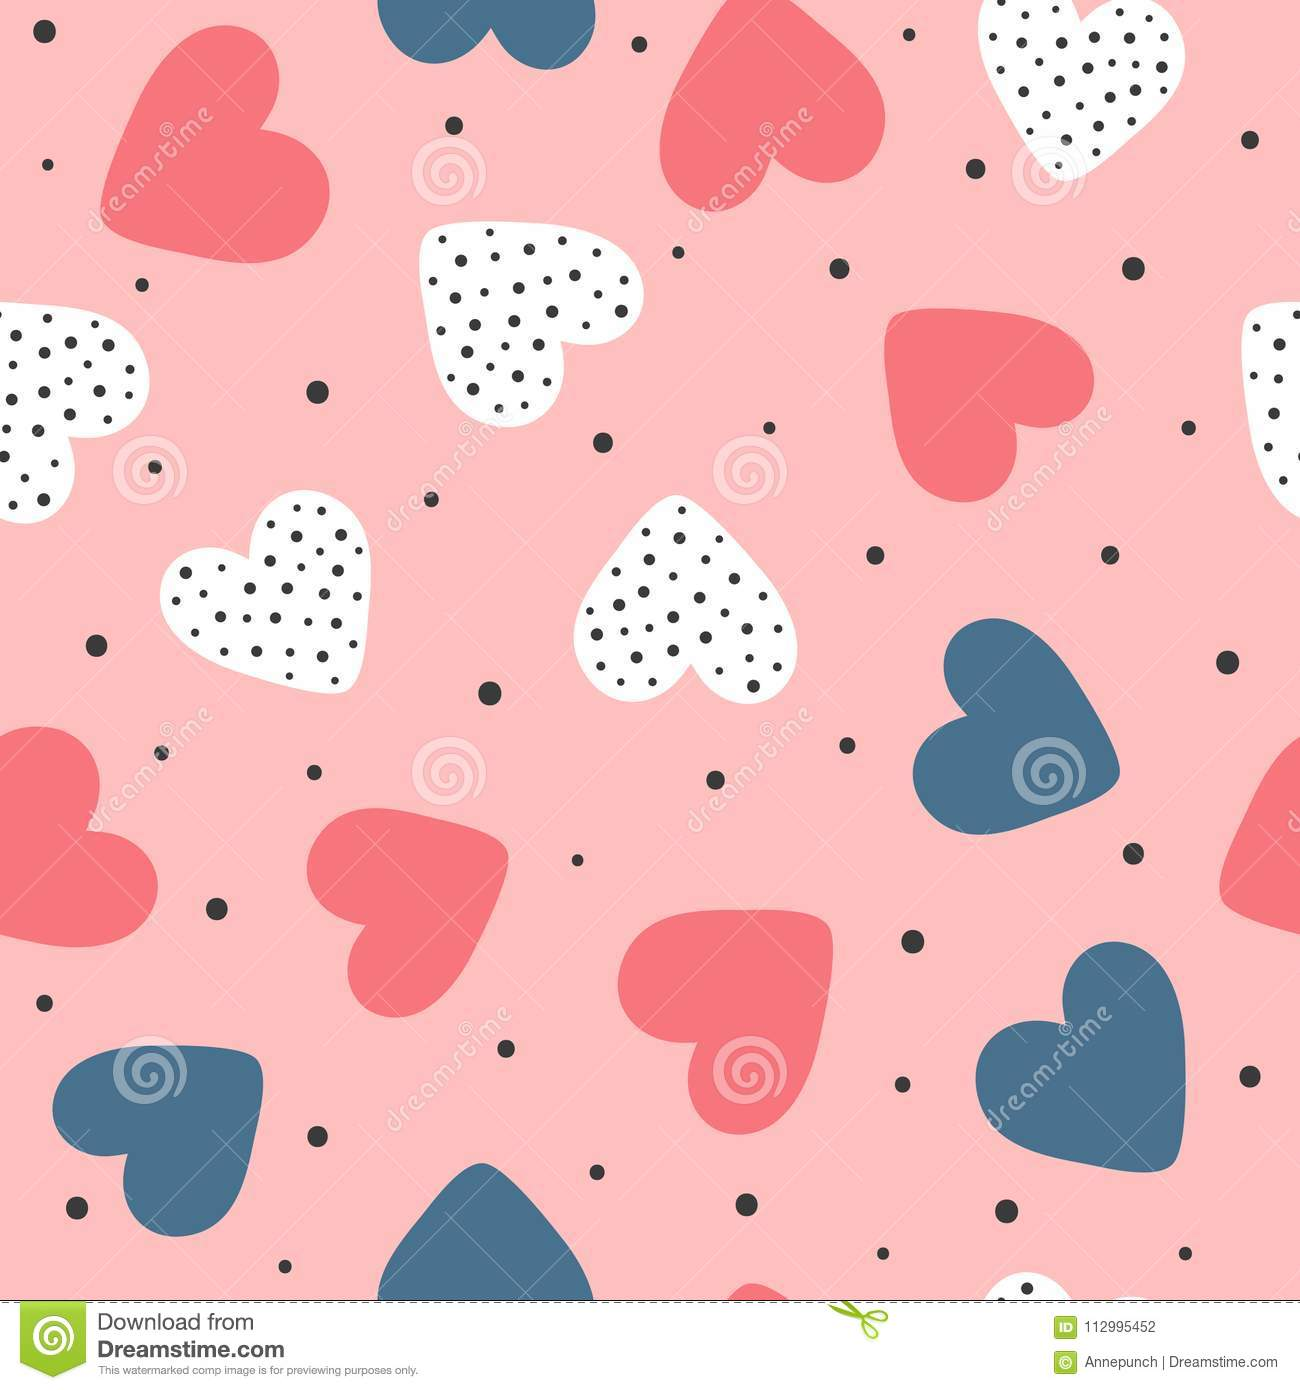 Cute seamless pattern with repeating hearts and round dots. Romantic endless print. Drawn by hand.